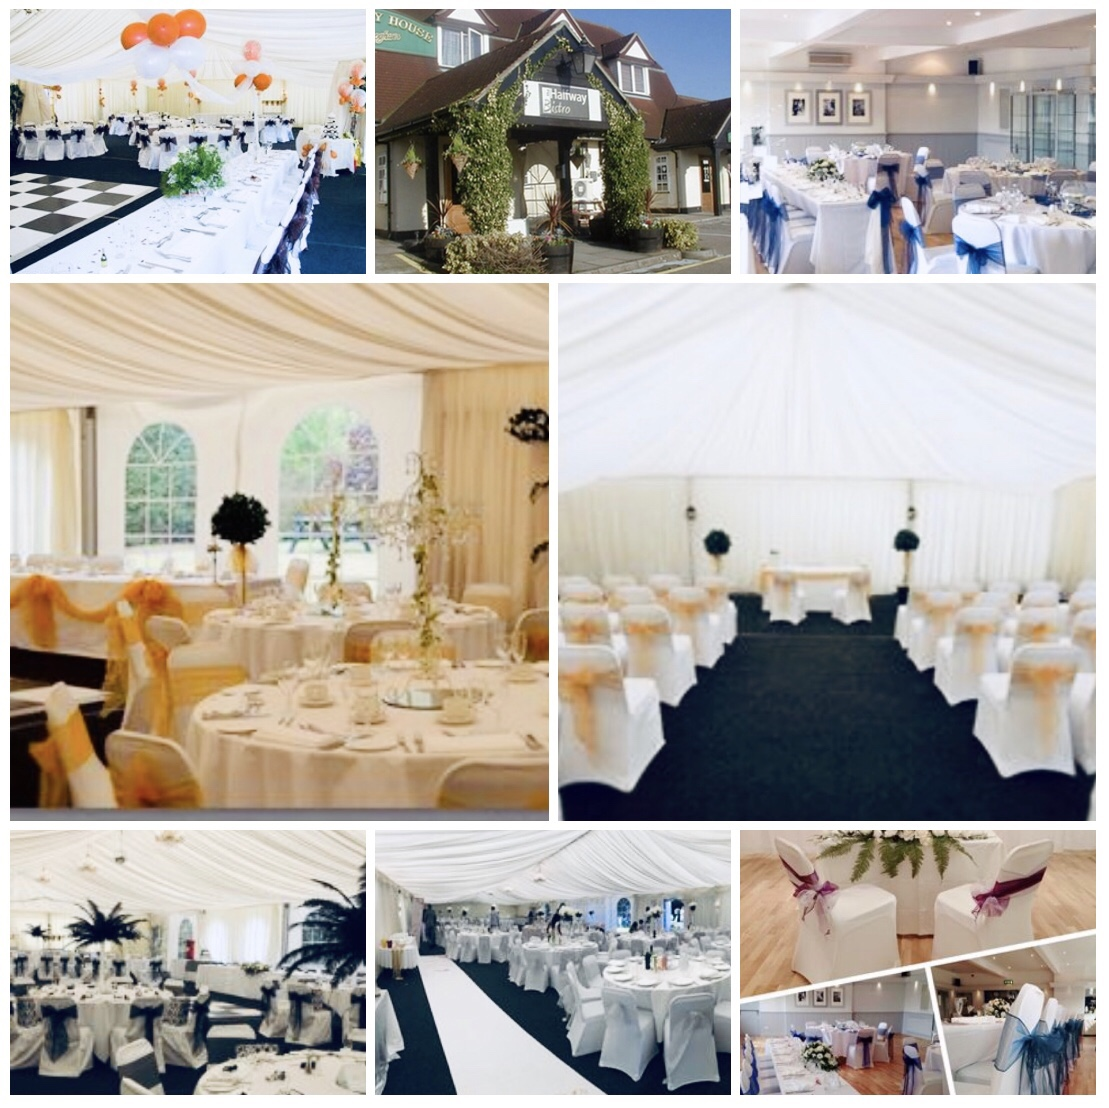 Chic Wedding Show Brentwood - 10th March 2019